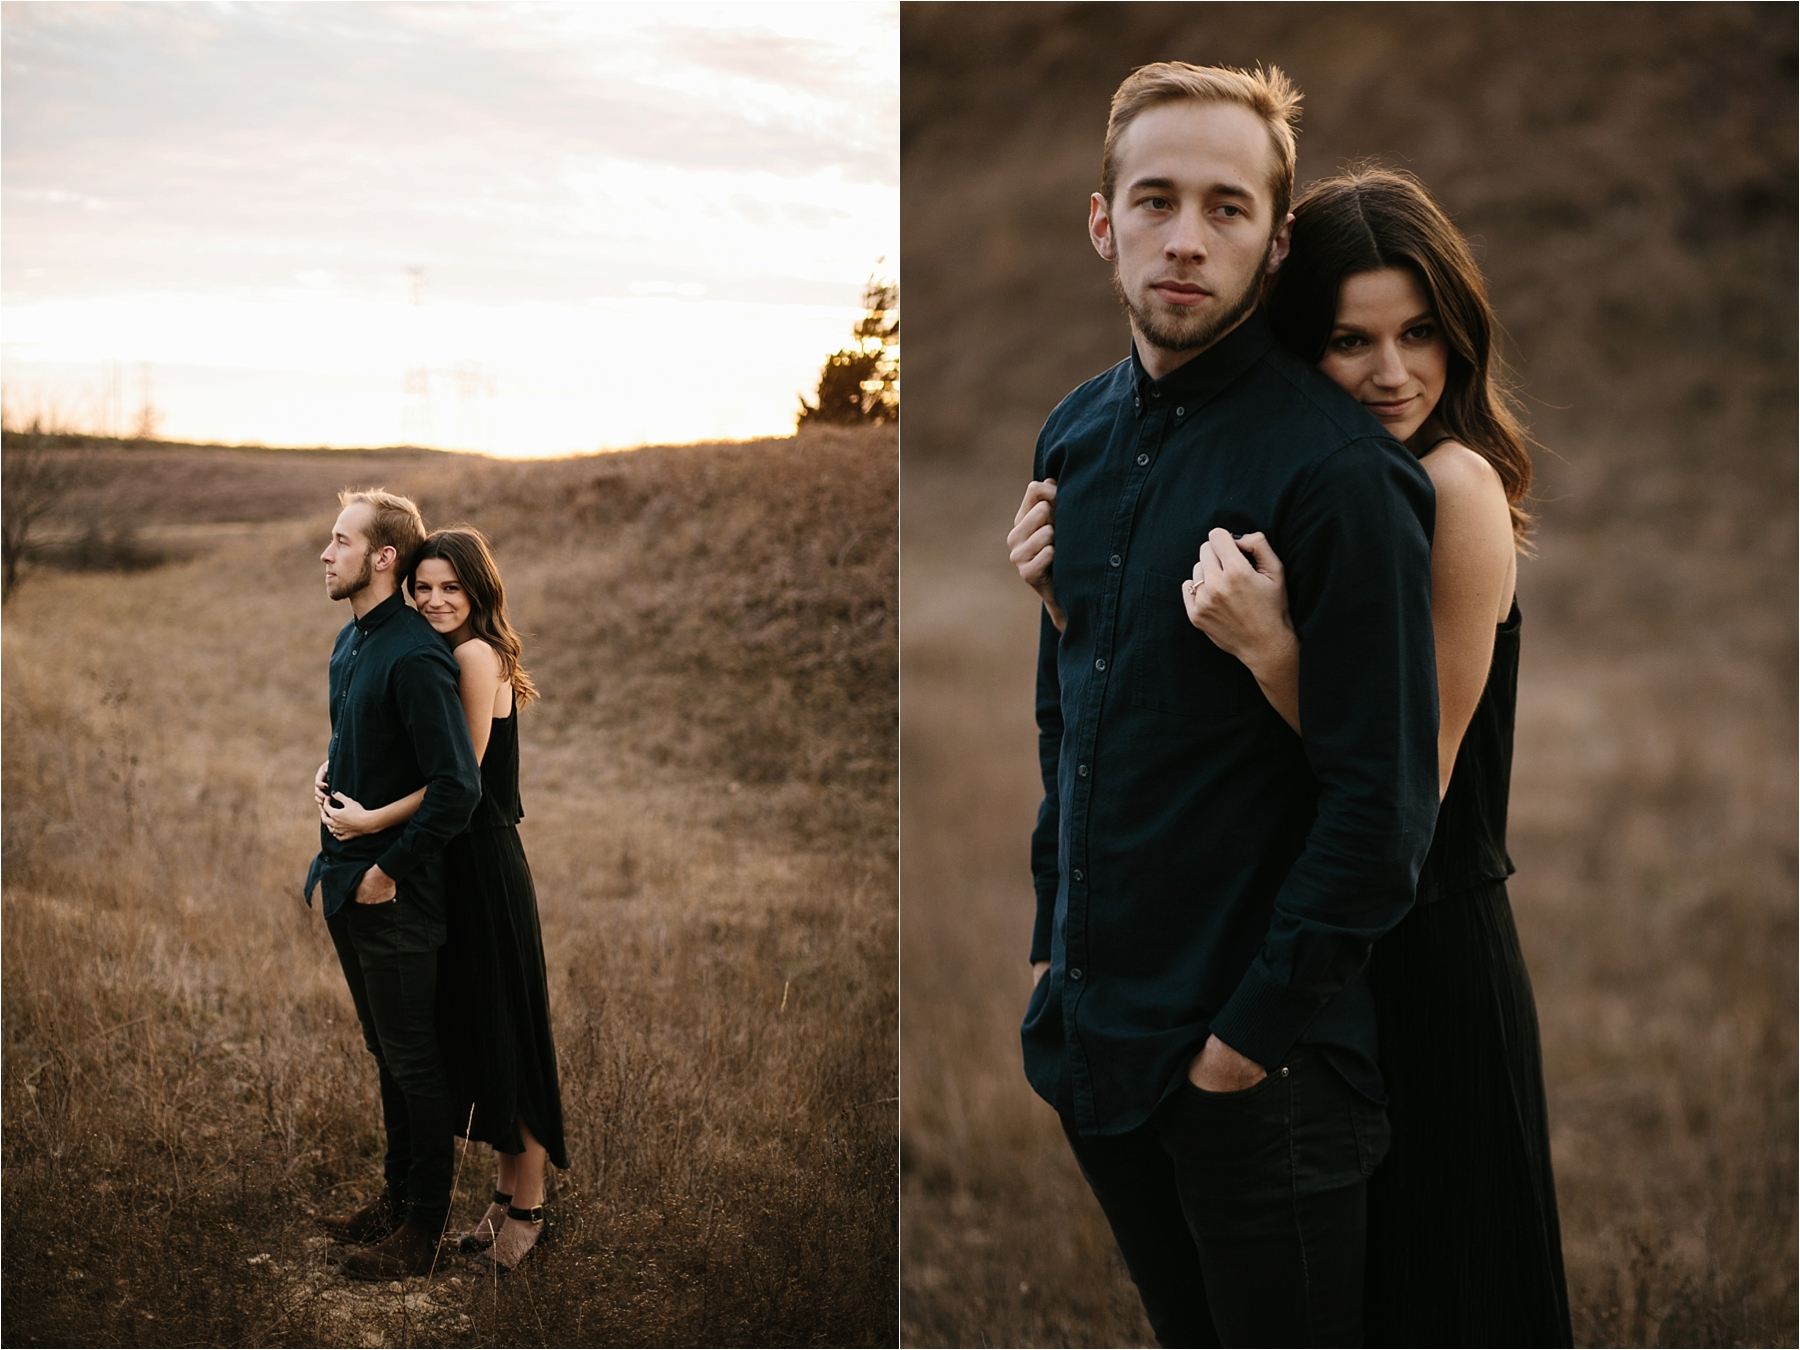 Trey + Phoebe __ a playful, intimate engagement session with dark_neutral outfit inspiration by North Texas Wedding Photographer Rachel Meagan Photography __ 39